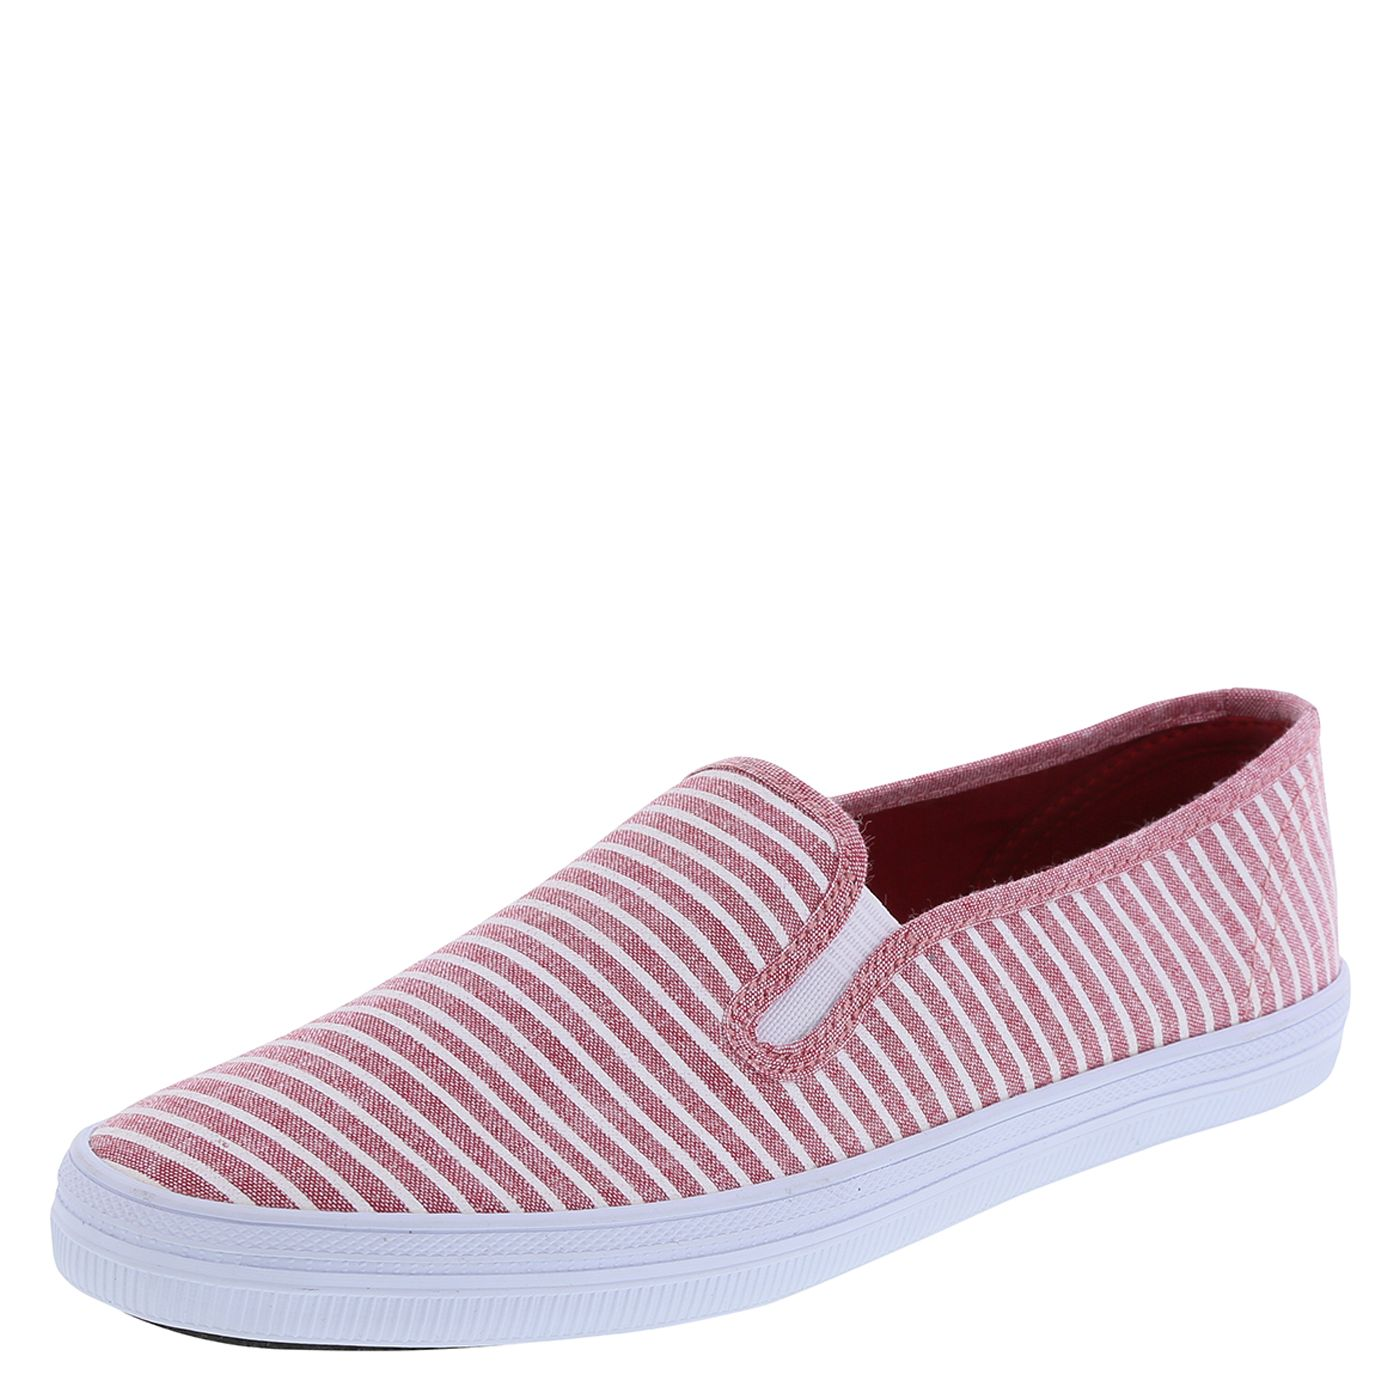 Roller shoes payless - Ladies Slip On Shoe With Red And White Stripes For Outside Fourth Of July Festivities